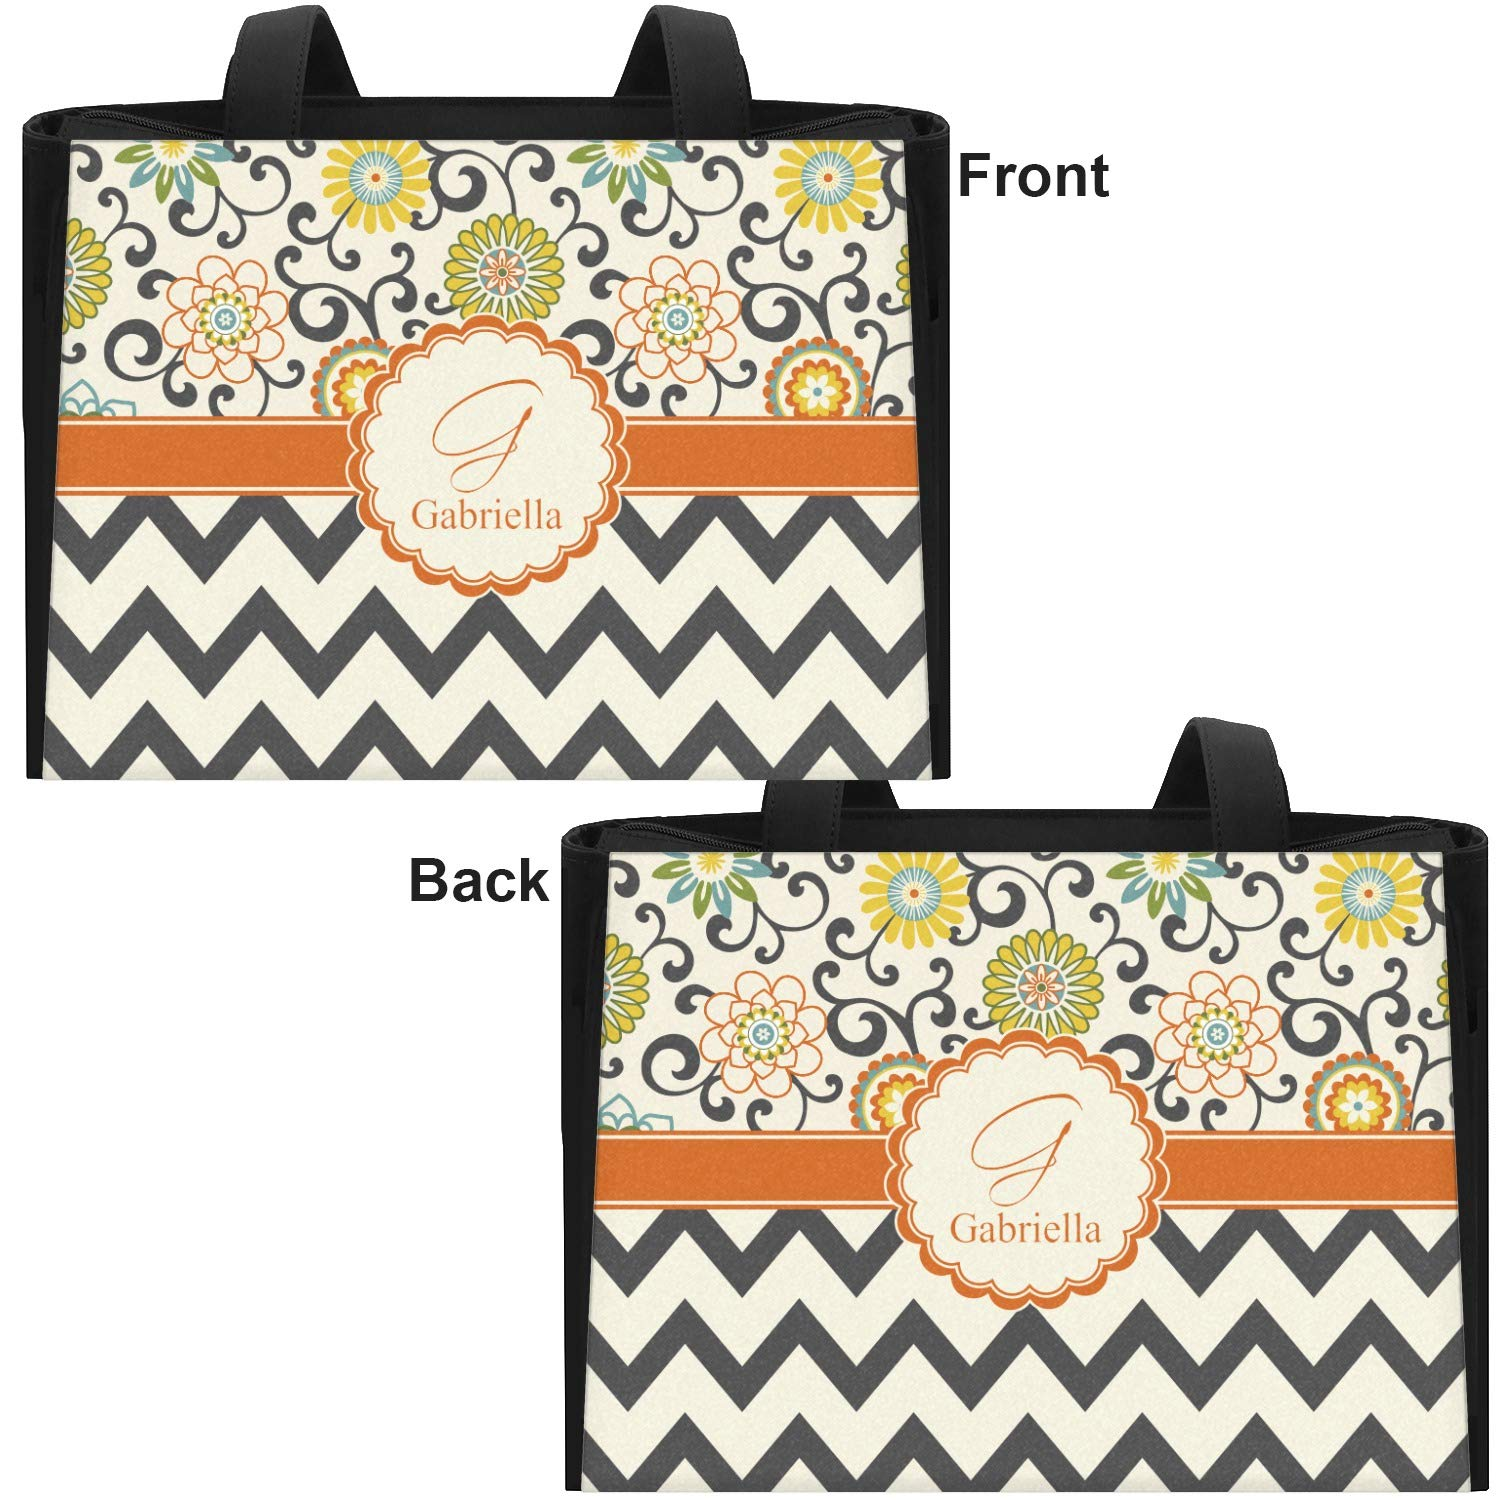 Swirls Personalized Floral /& Chevron Ladies Workout Bag Front /& Back